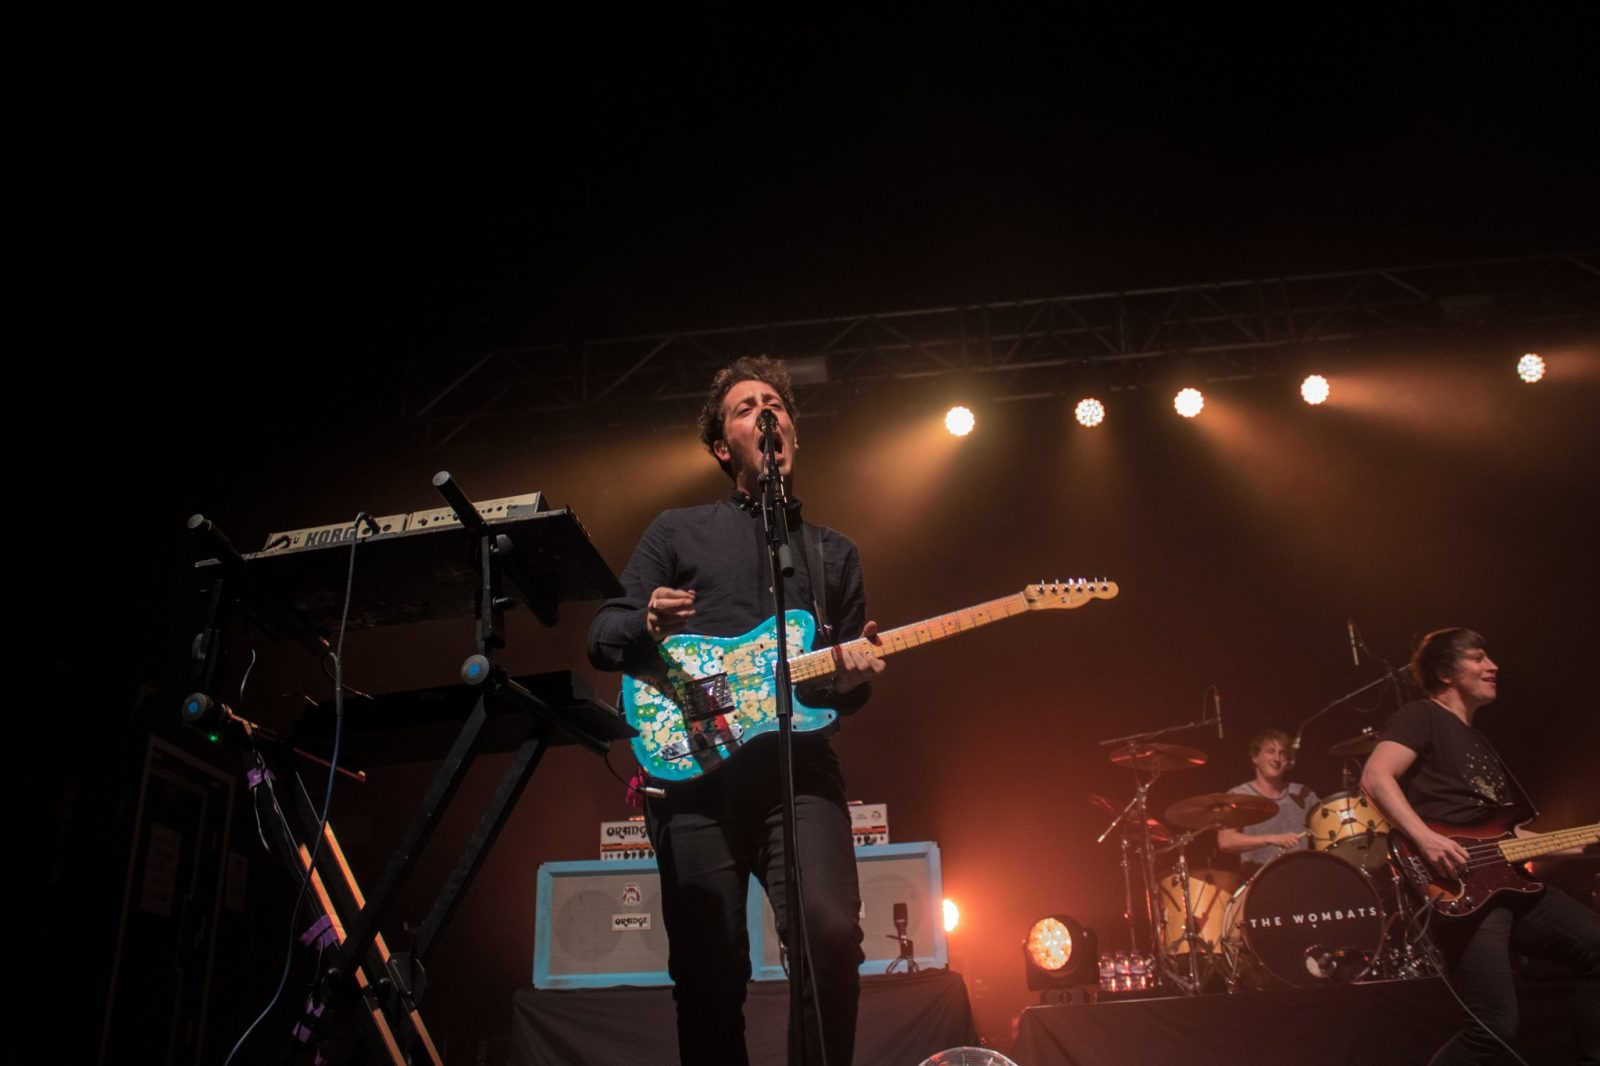 An Evening With: The Wombats